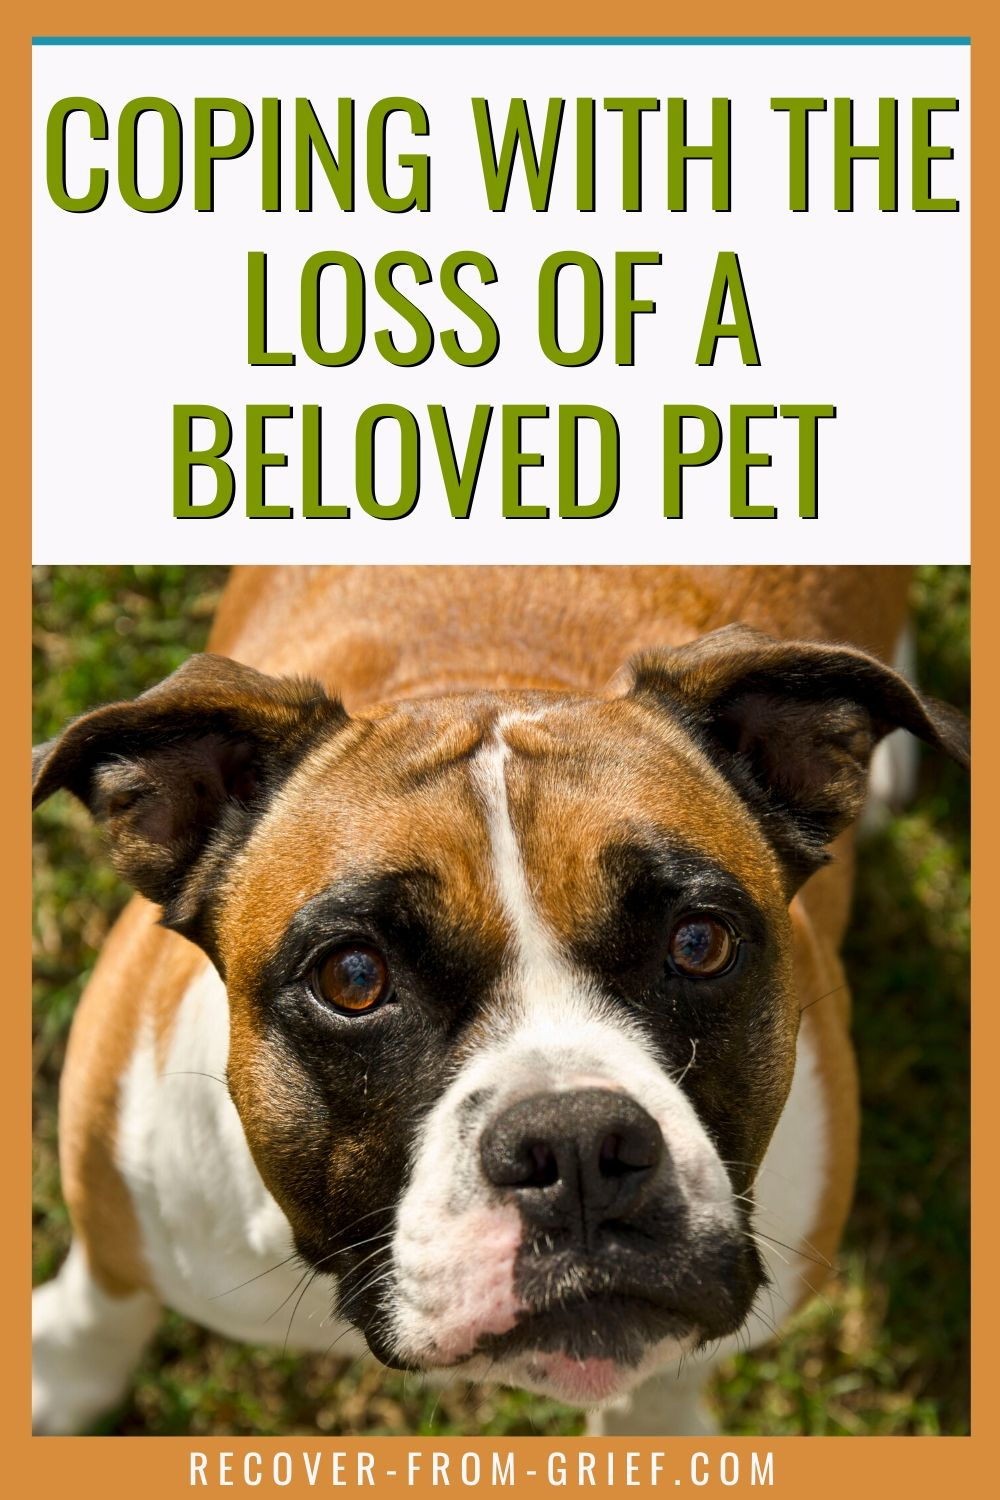 Have you lost a beloved pet? Come and learn how to deal with pet death in an environment where you are understood. #pets #petdeath #grief #bestfriend #loss #anguish